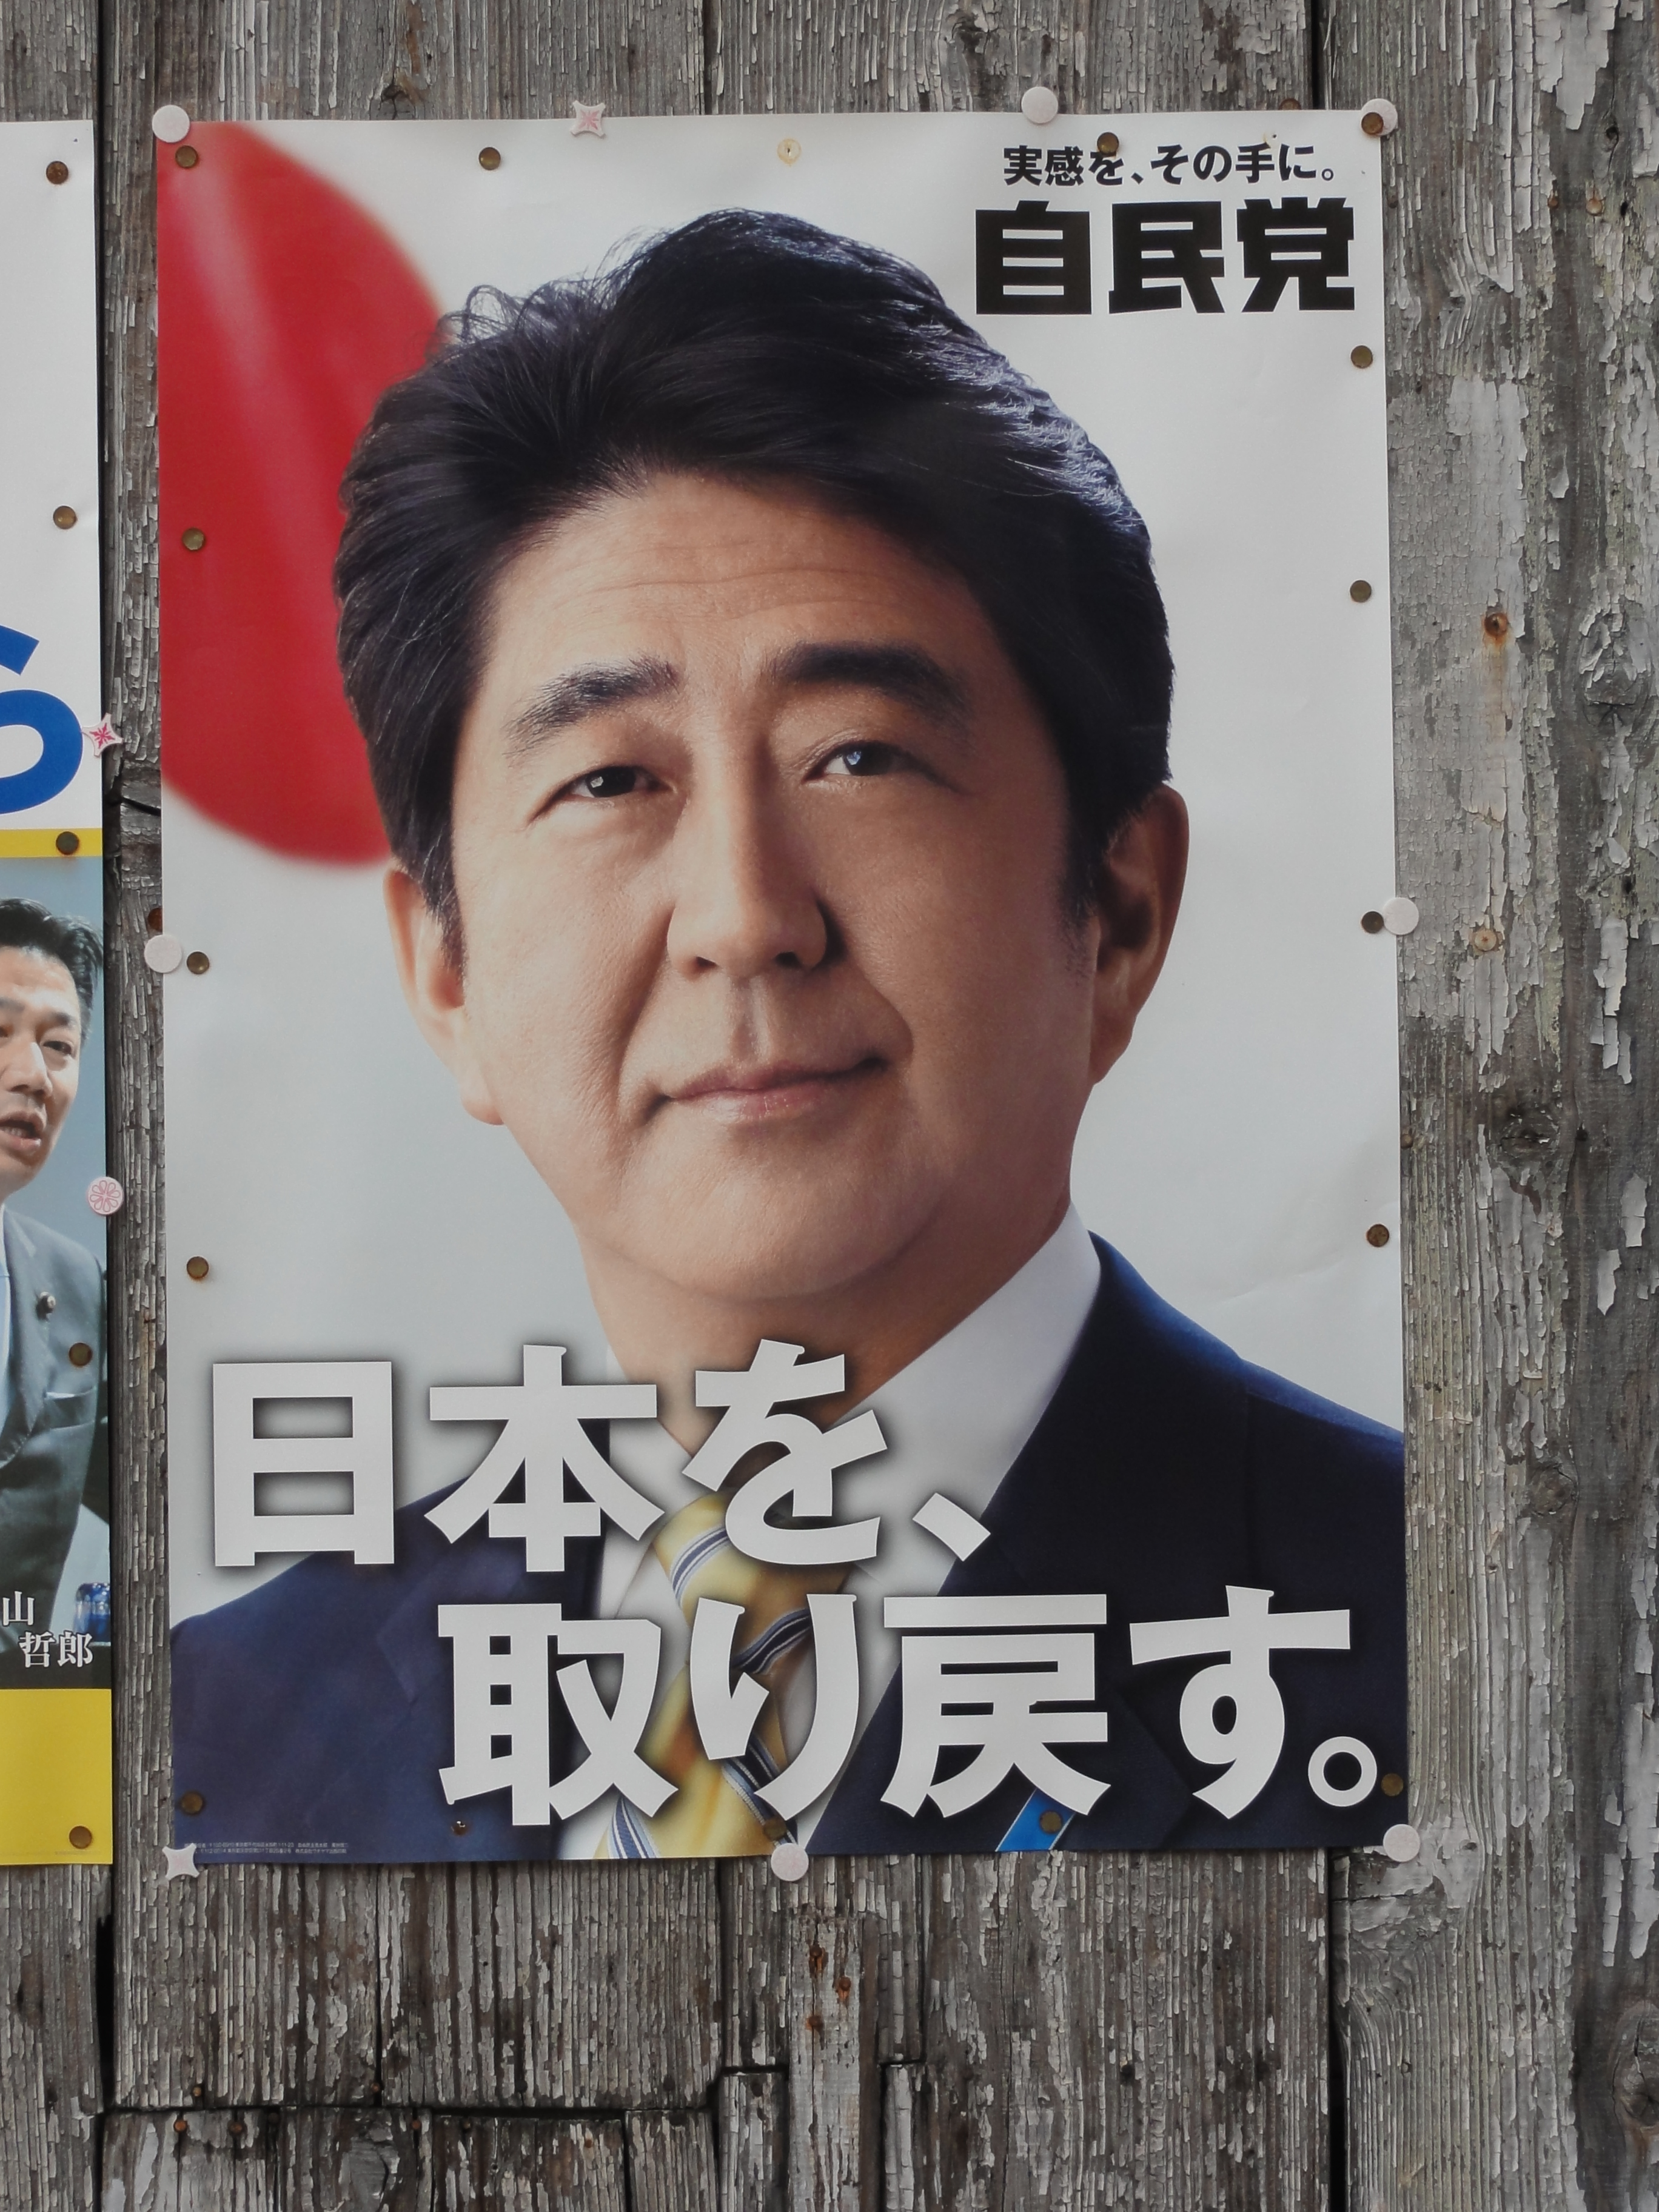 learn-kanji-Abe-election-poster